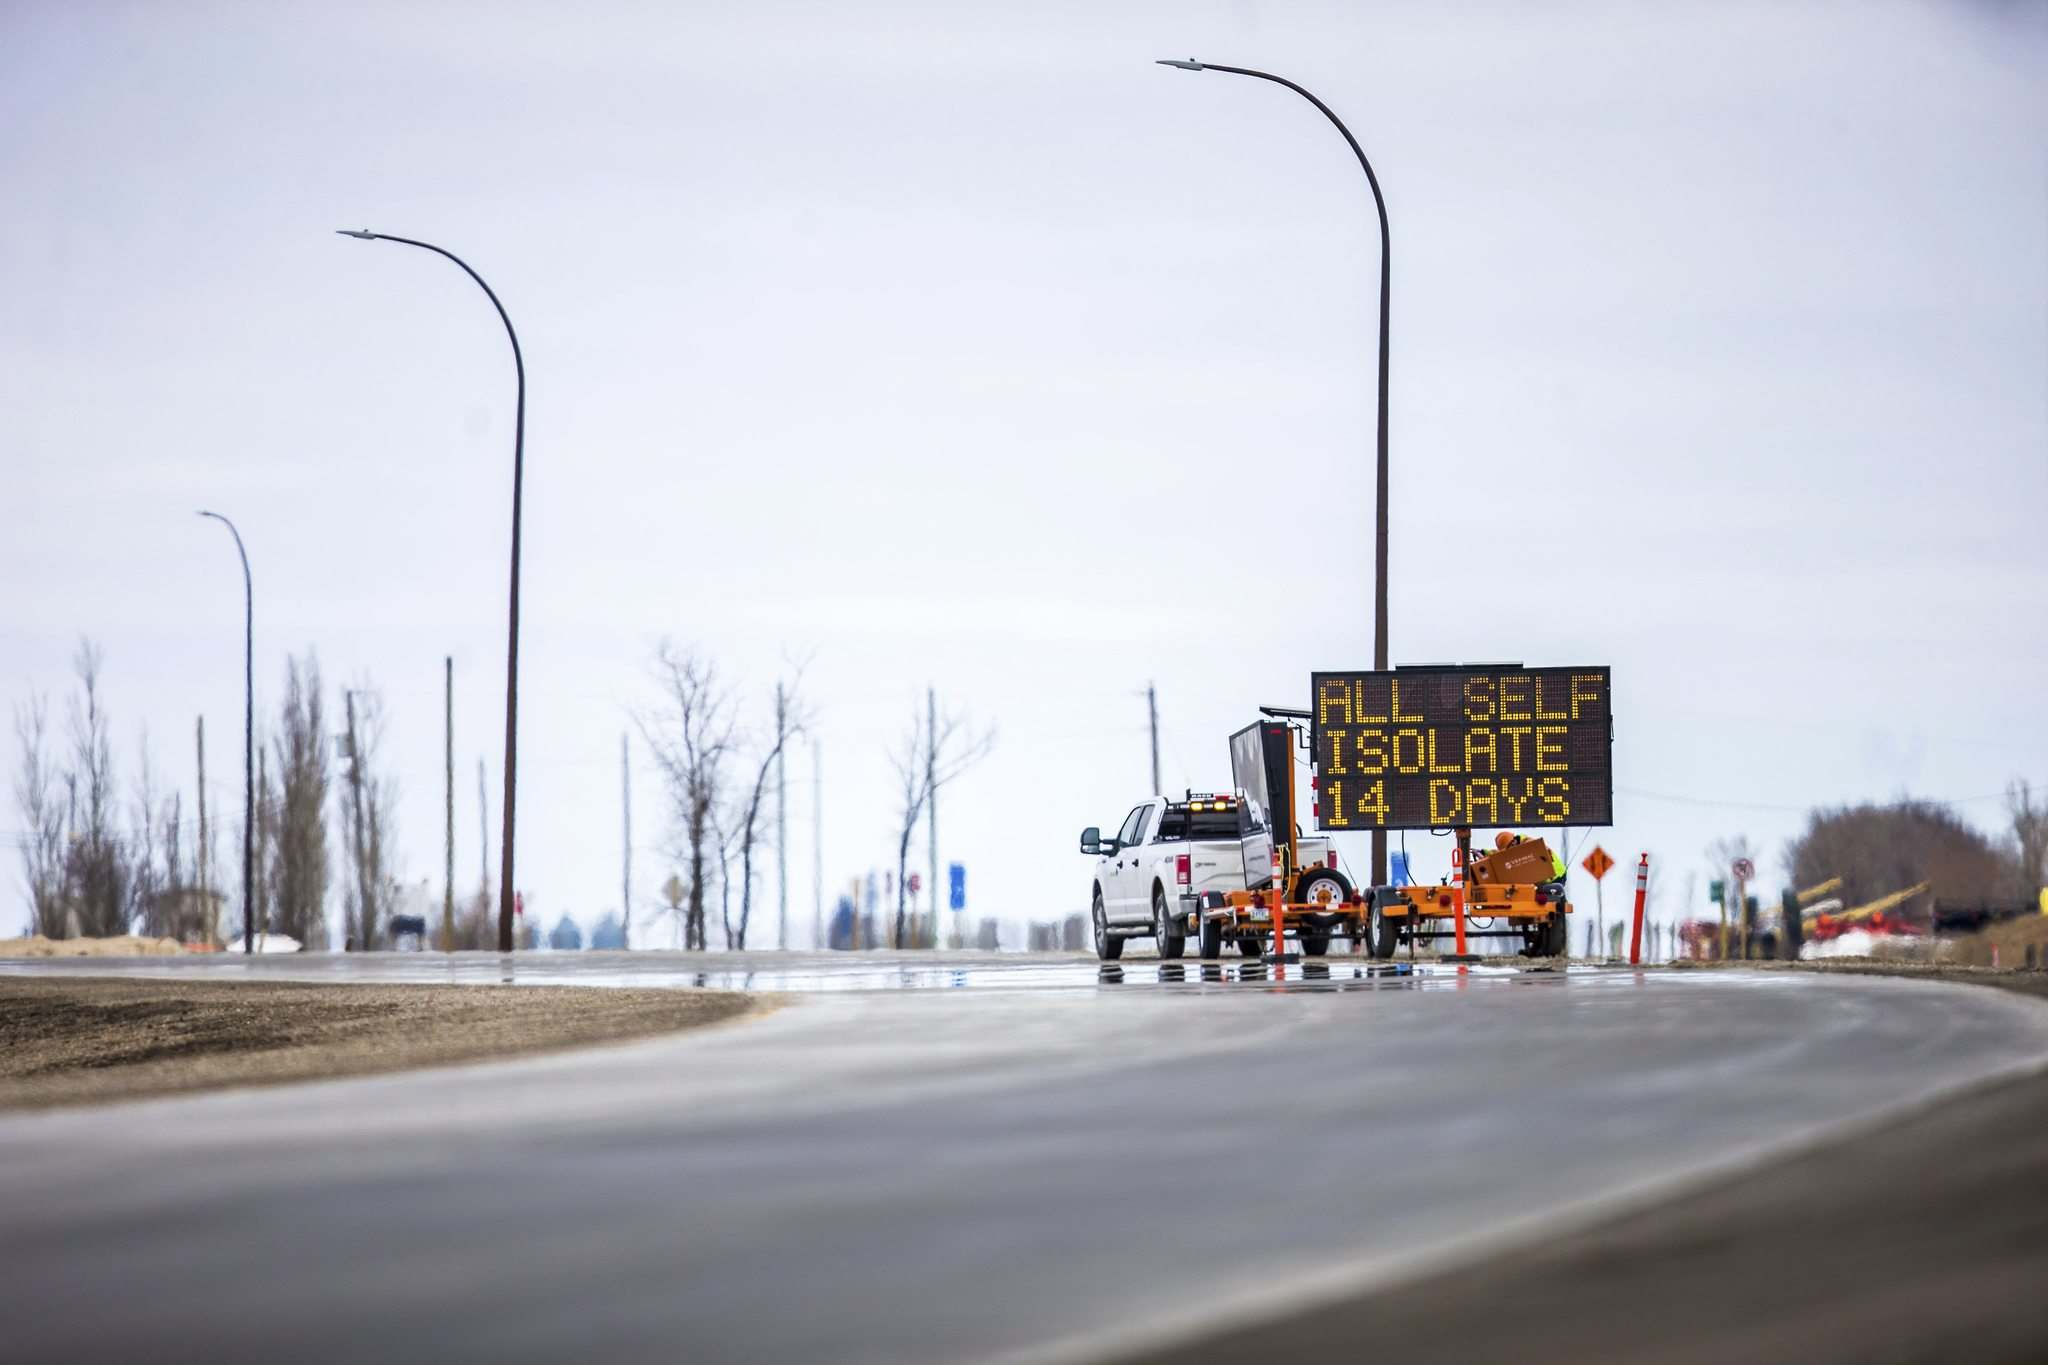 A sign instructs returning travellers at the Emerson border crossing. (Mikaela MacKenzie / Free Press files)